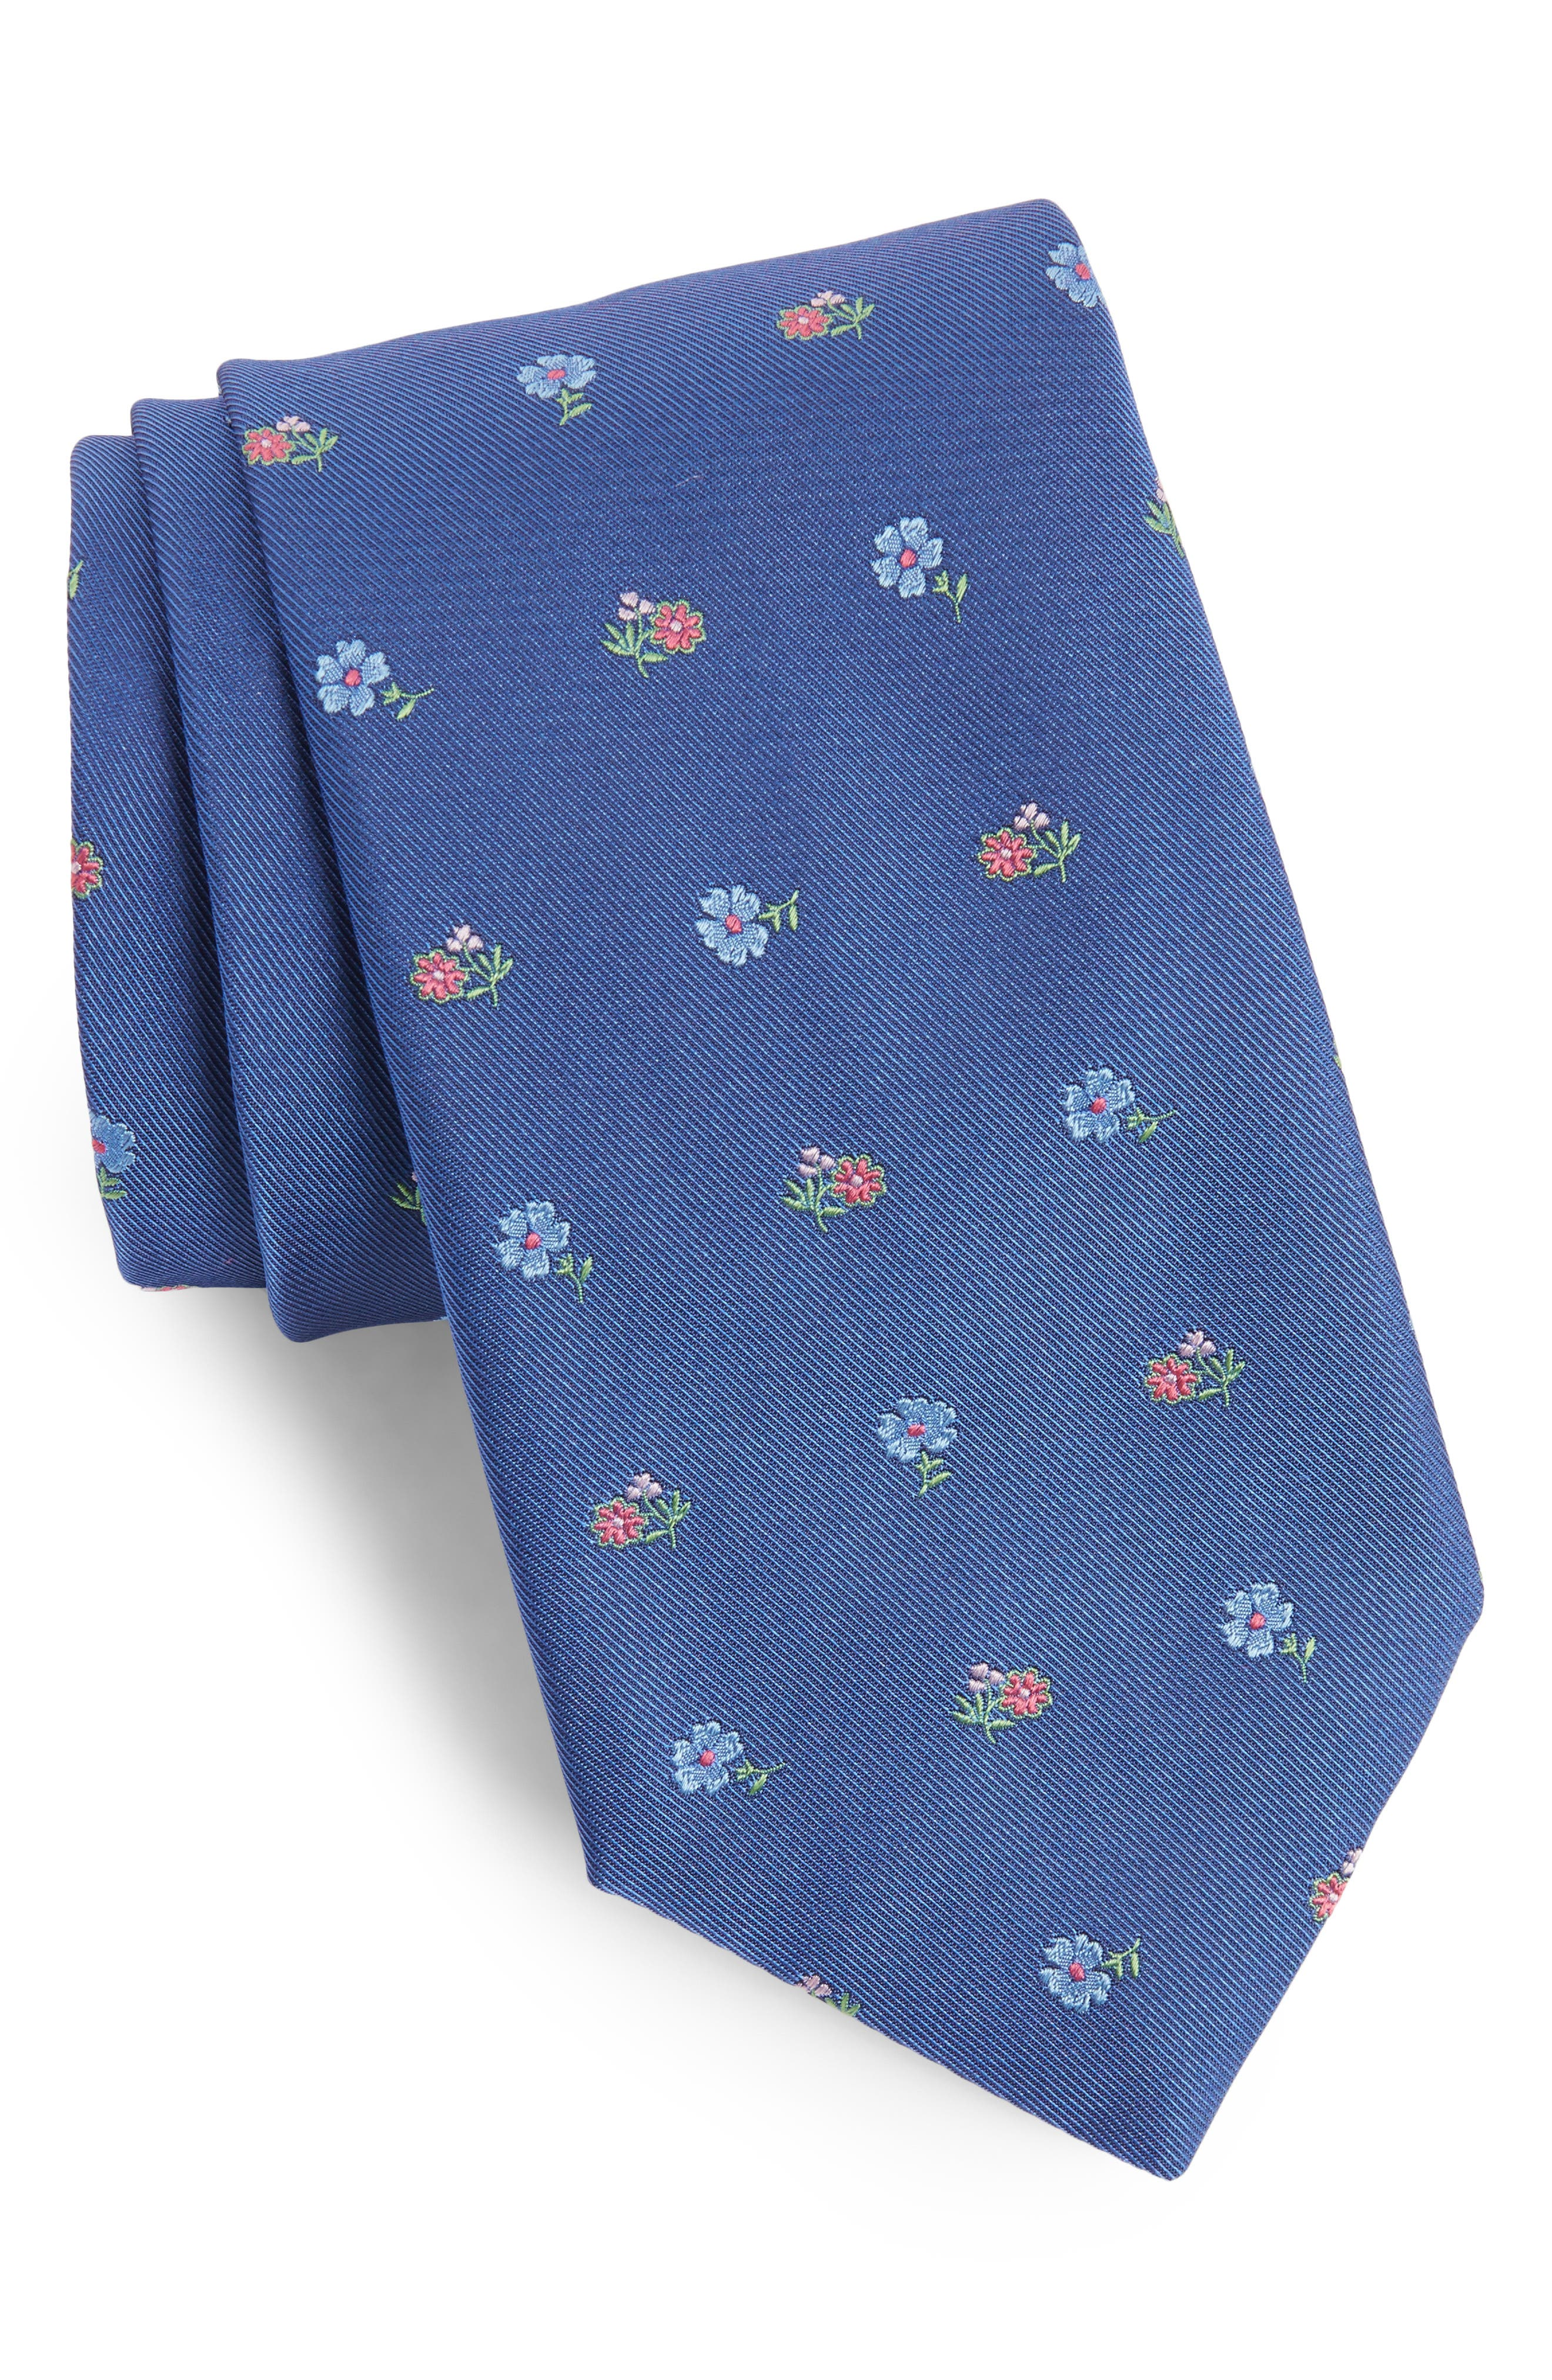 Floral Jacquard Silk Tie,                             Main thumbnail 1, color,